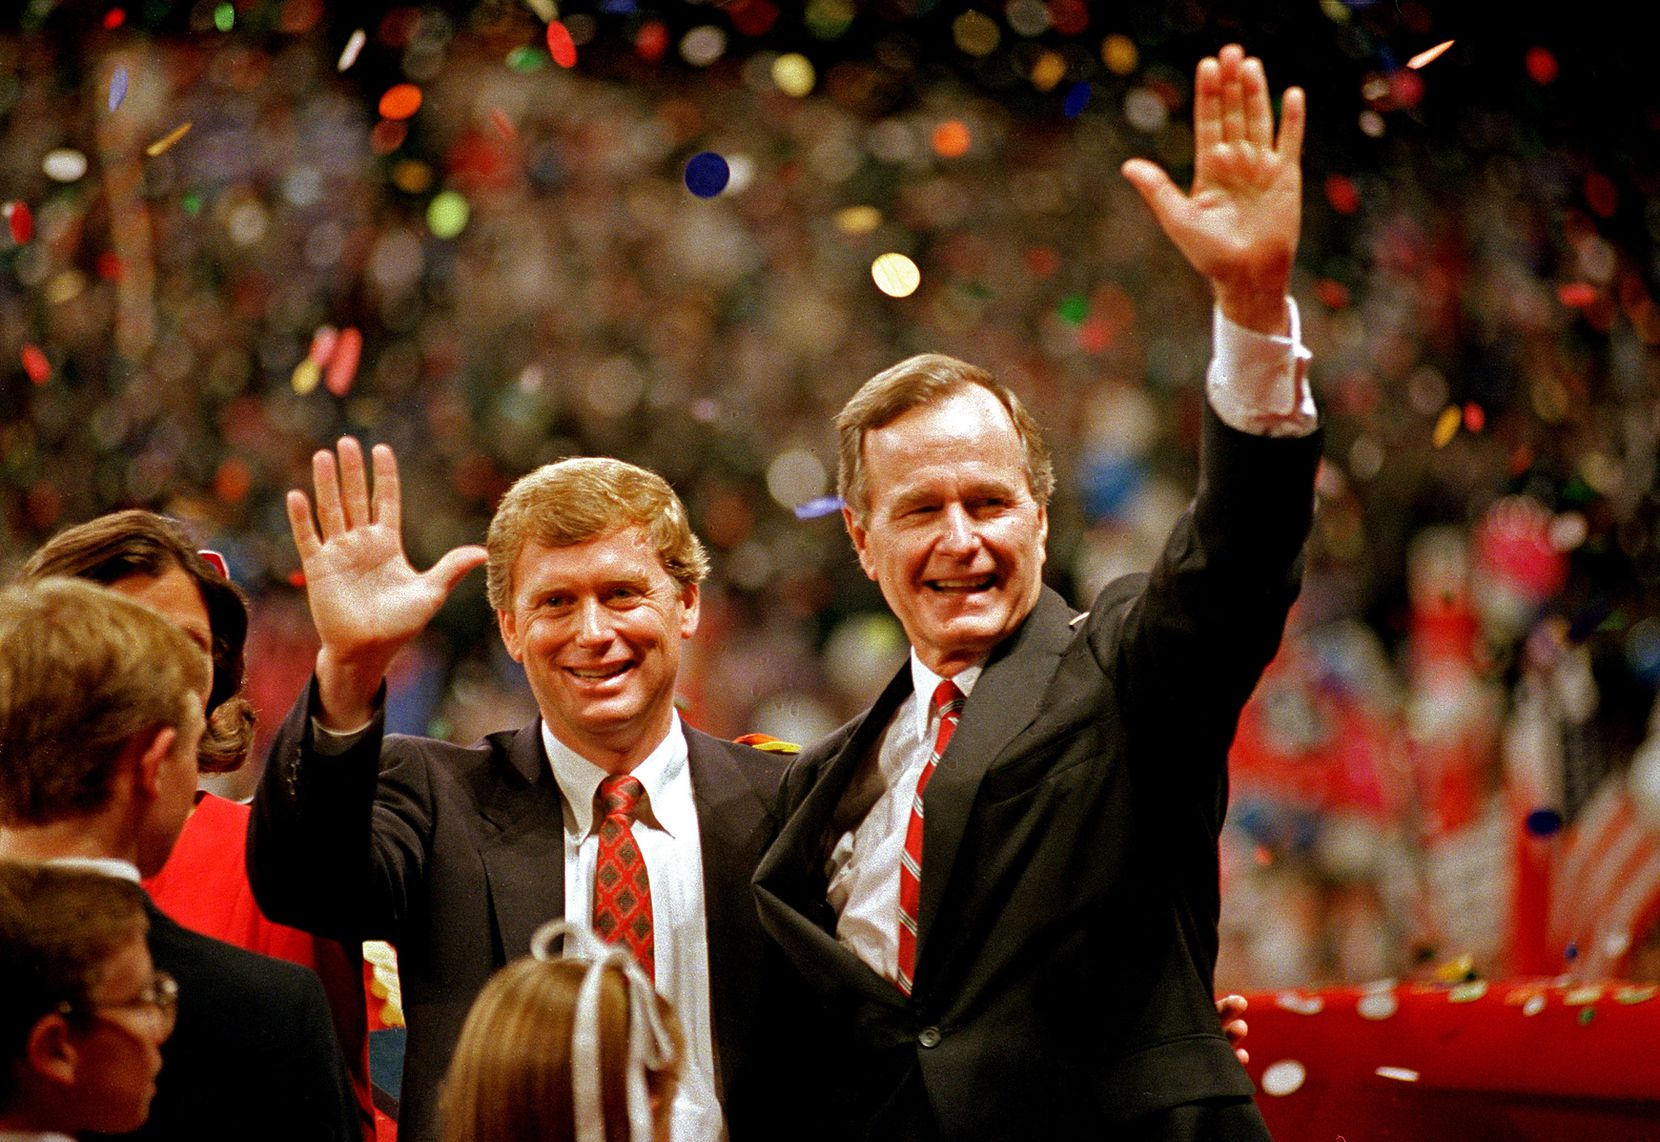 Bush and his vice presidential running mate, Sen. Dan Quayle, R-Ind., celebrated after Bush's nomination for president at the Republican National Convention in New Orleans in August 1988.